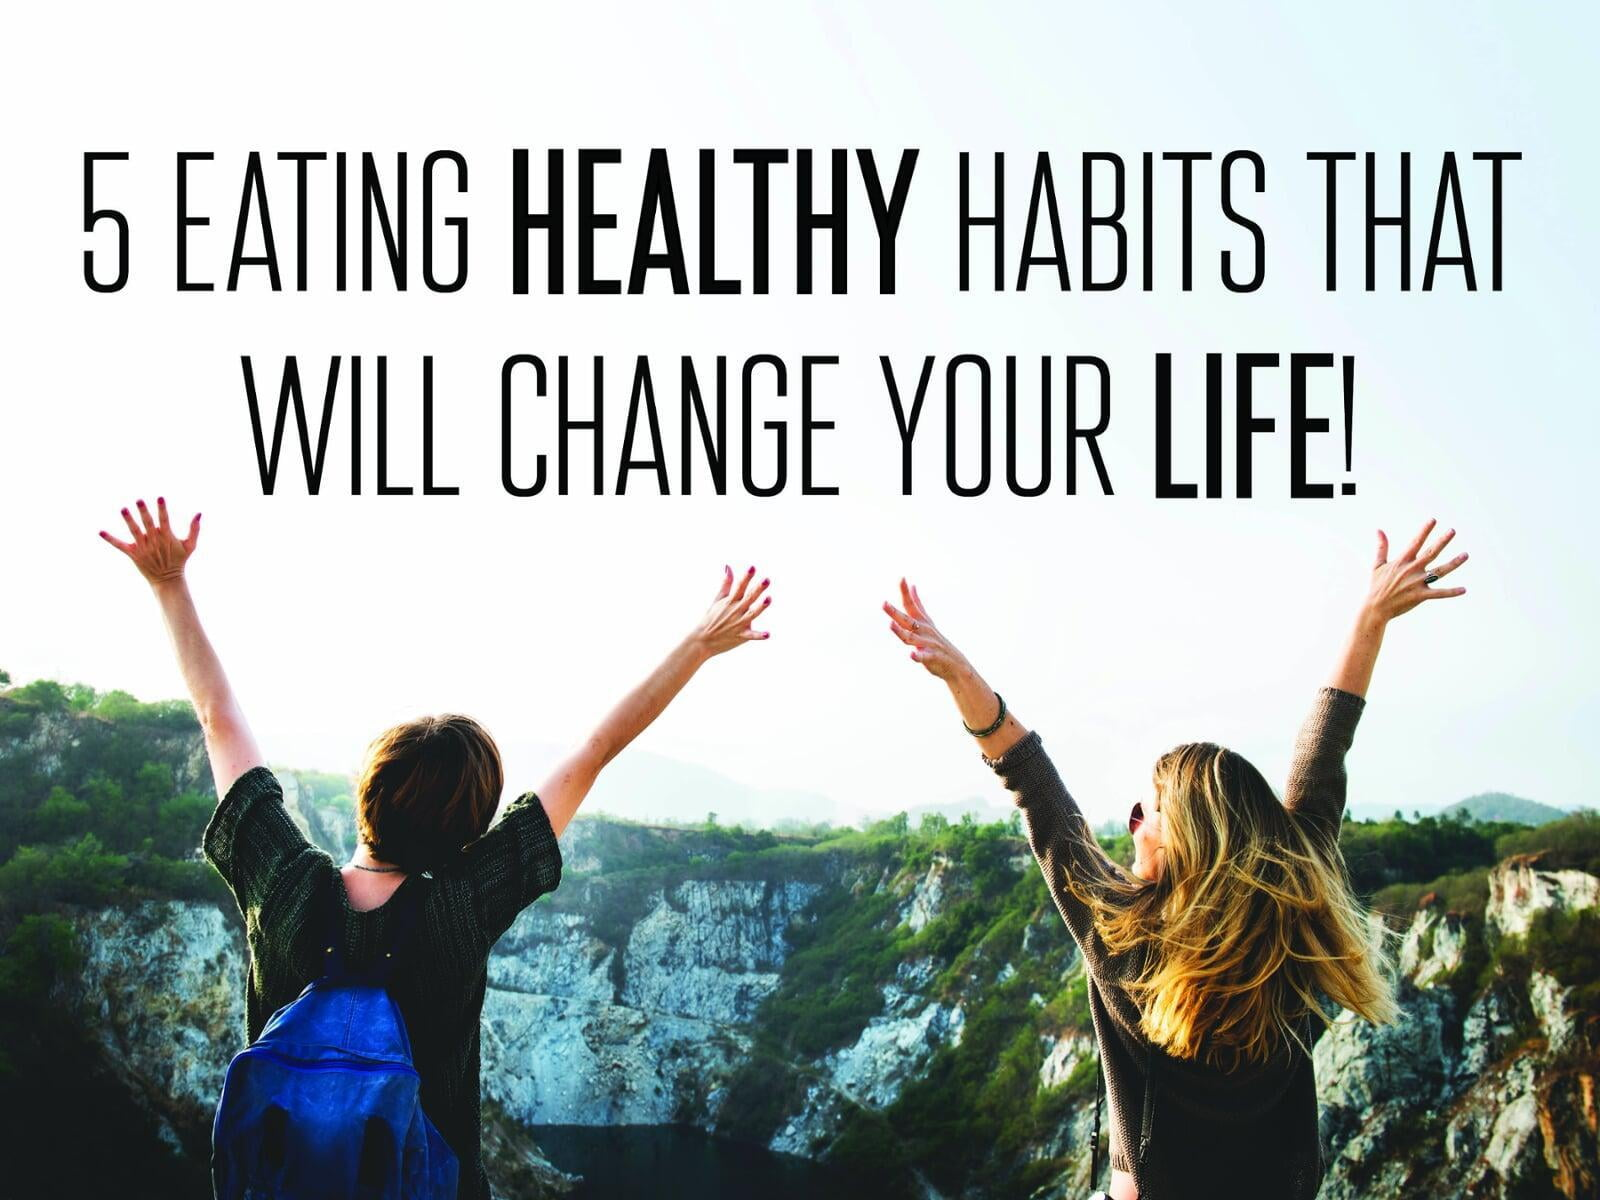 5 healthy eating habits